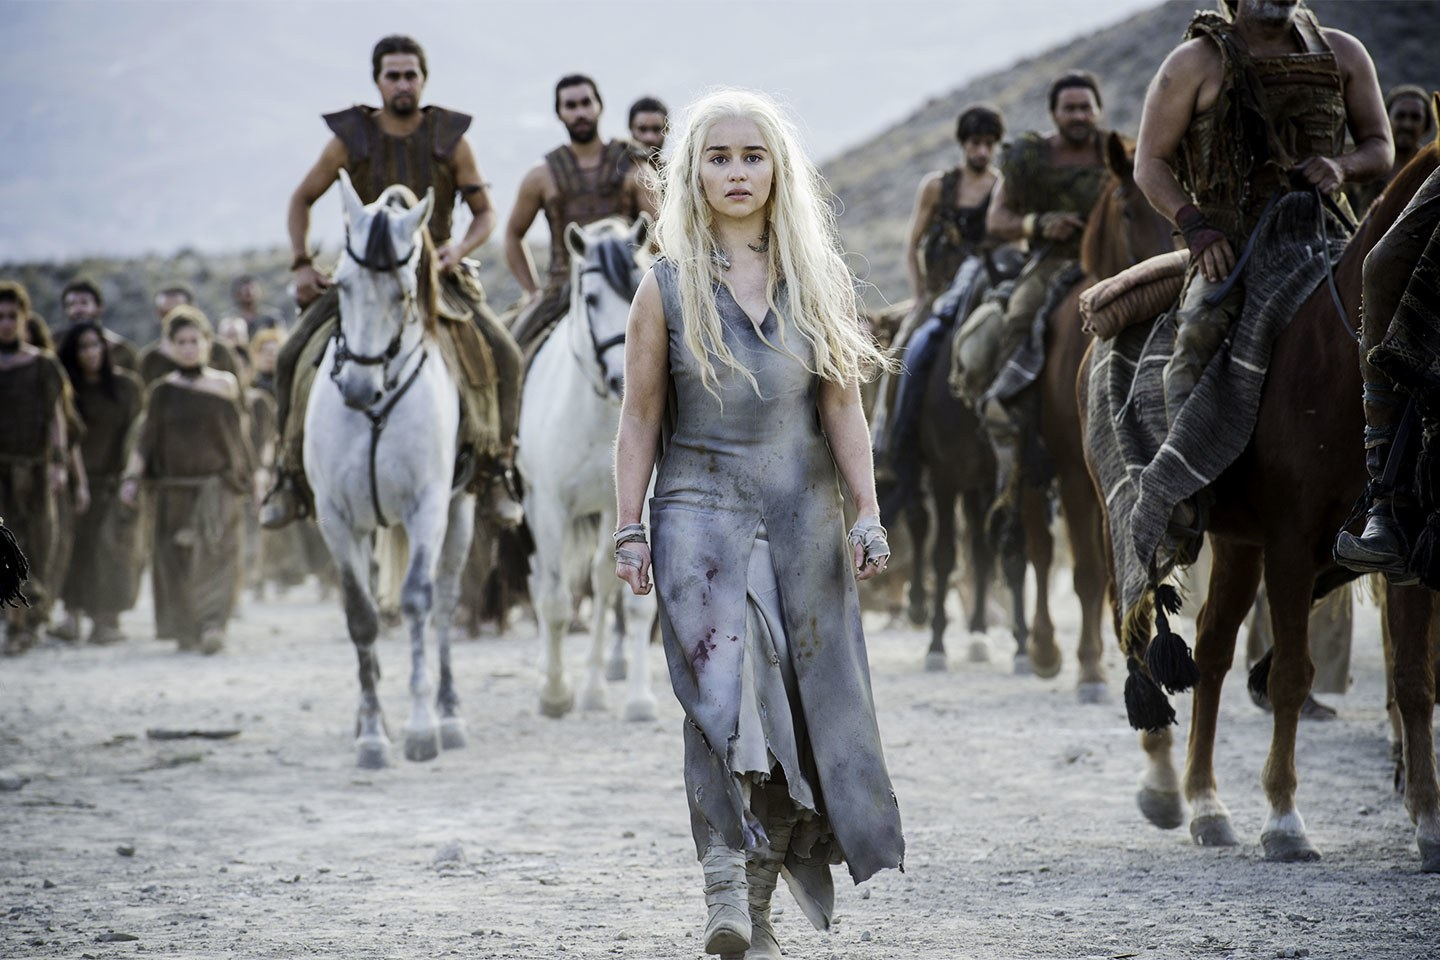 Game Of Thrones Hacker Has Been Caught, Charged, But Cannot Be Arrested